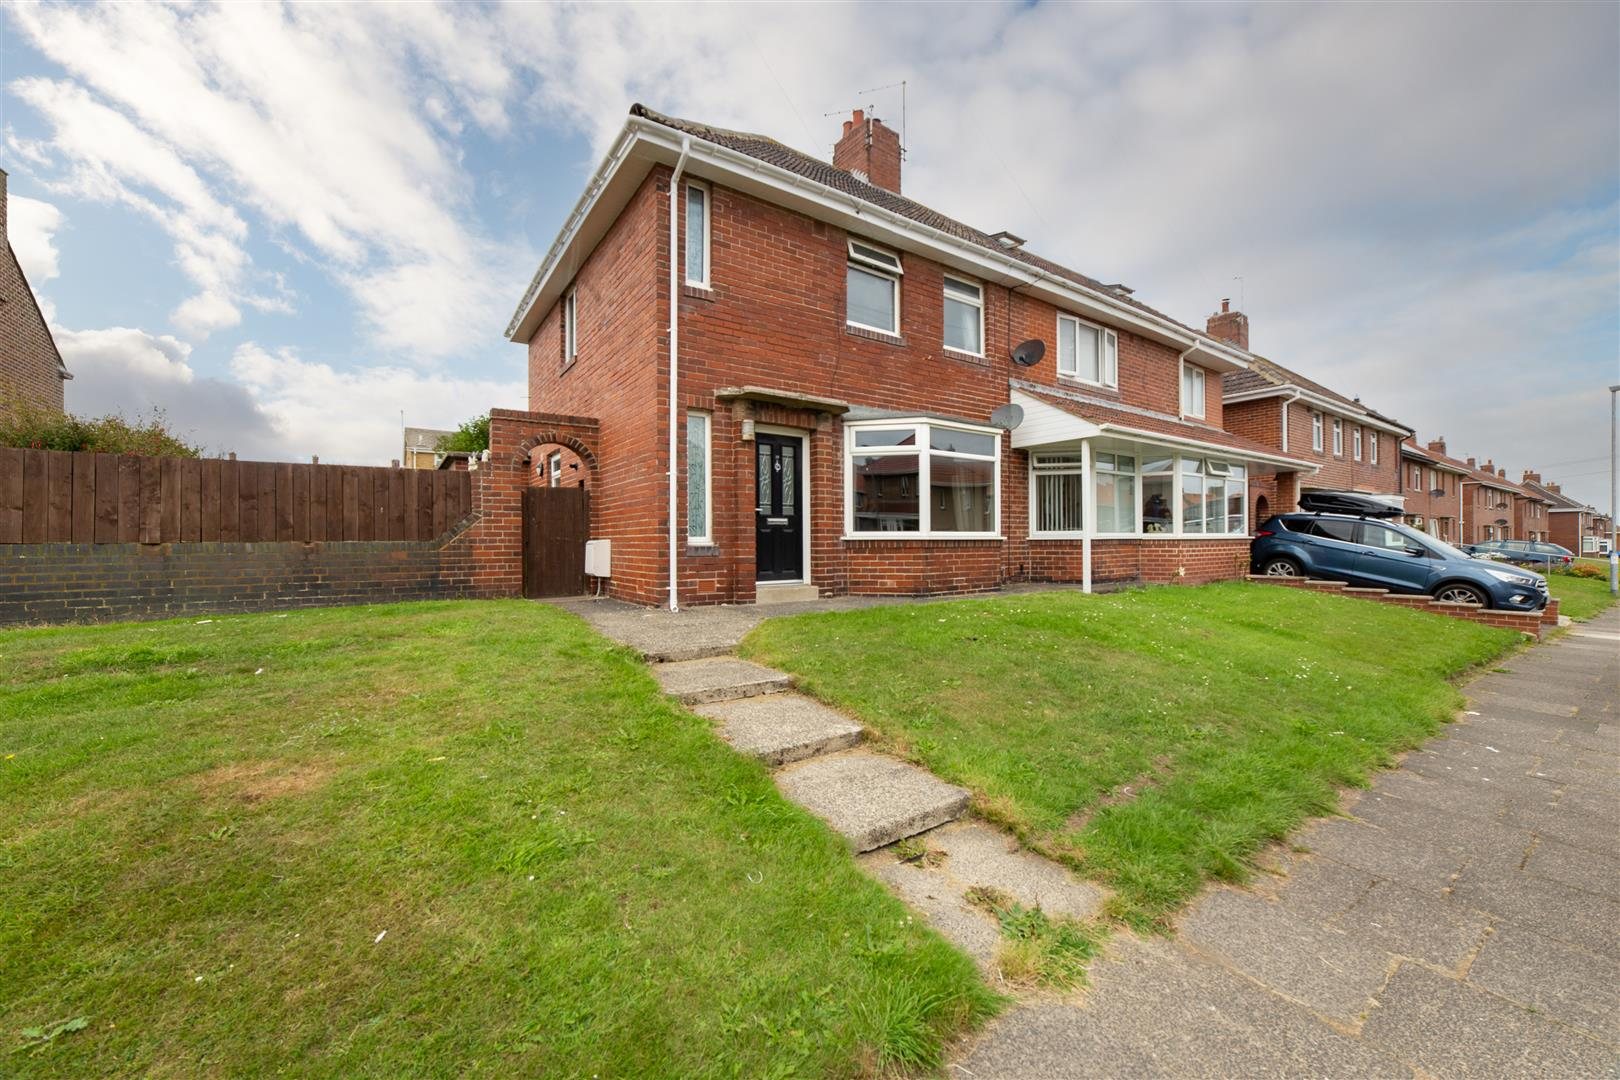 2 bed to rent in Southward, Whitley Bay, NE26